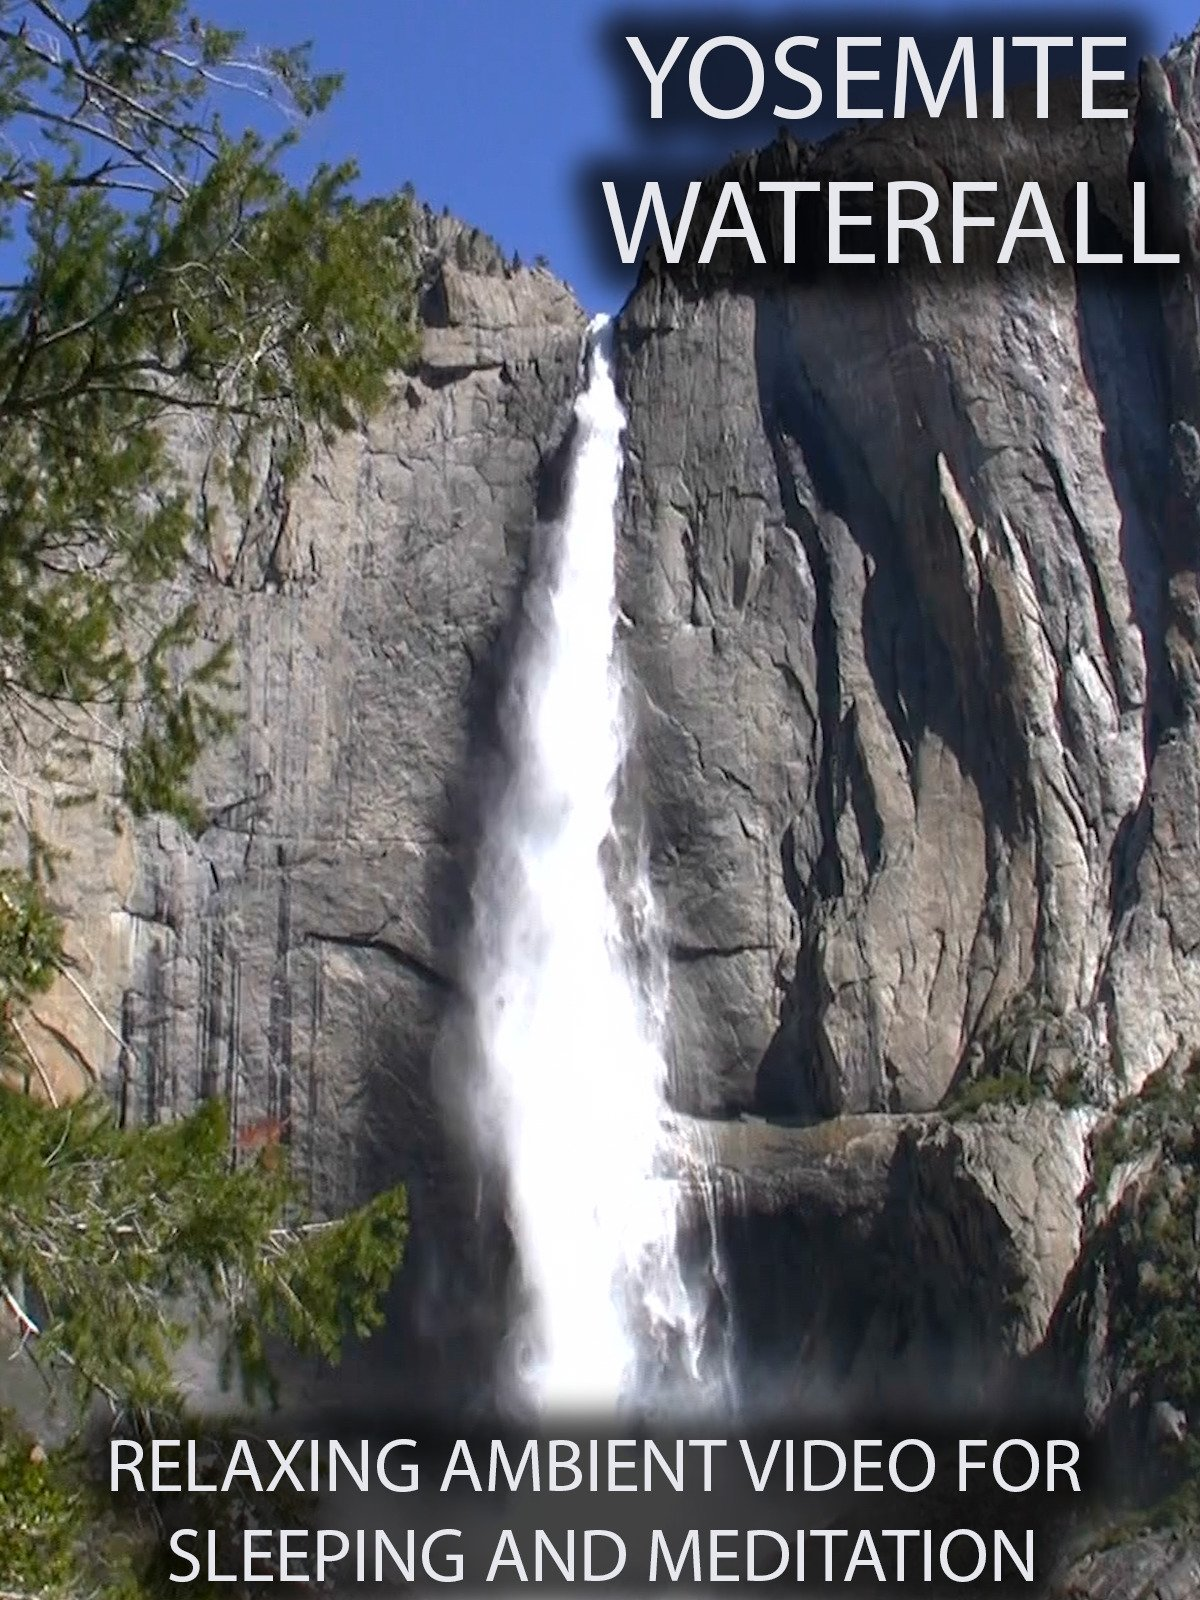 Yosemite Waterfall Relaxing Ambient Video for Sleeping and Meditation